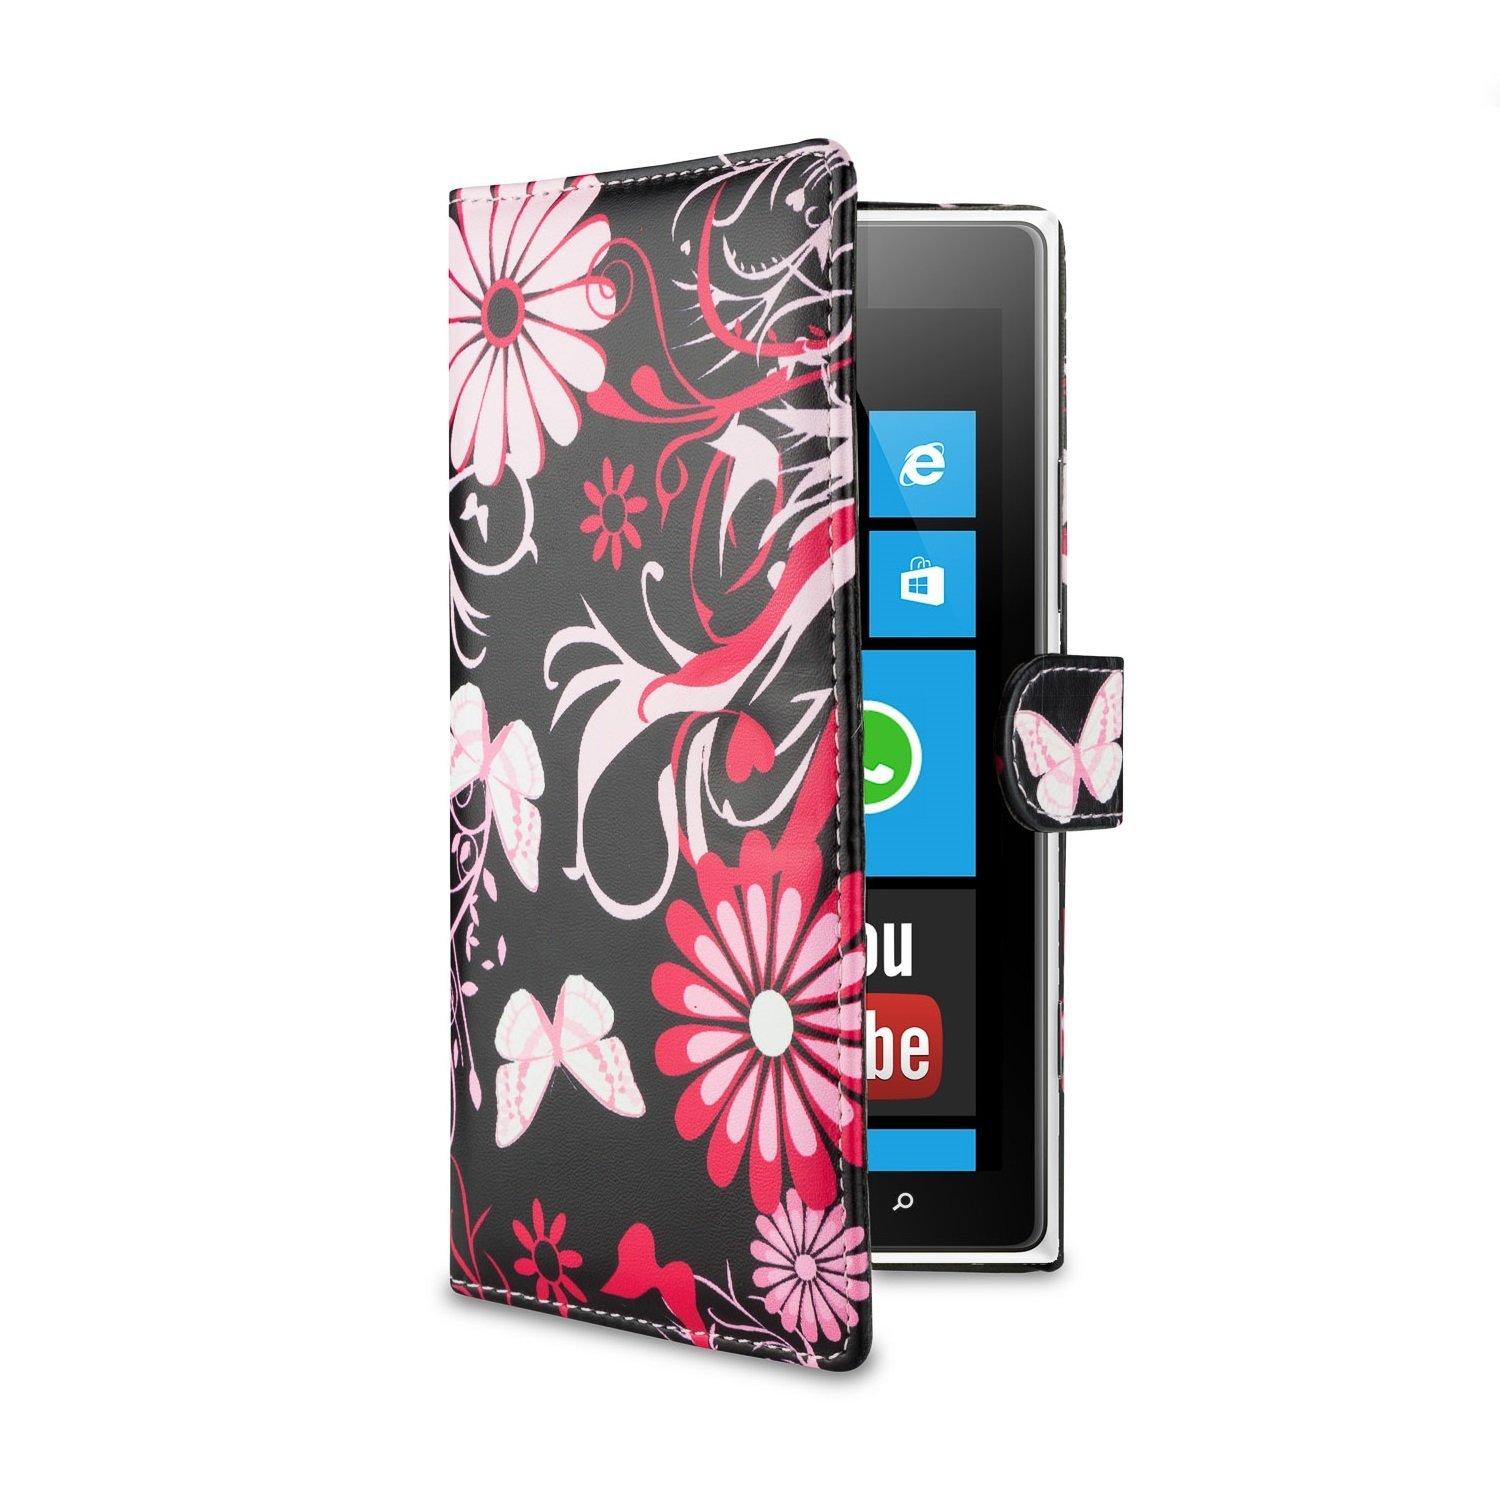 32nd® Design book wallet PU leather case cover for Nokia Lumia 1320, including screen protector and cleaning cloth - Gerbera